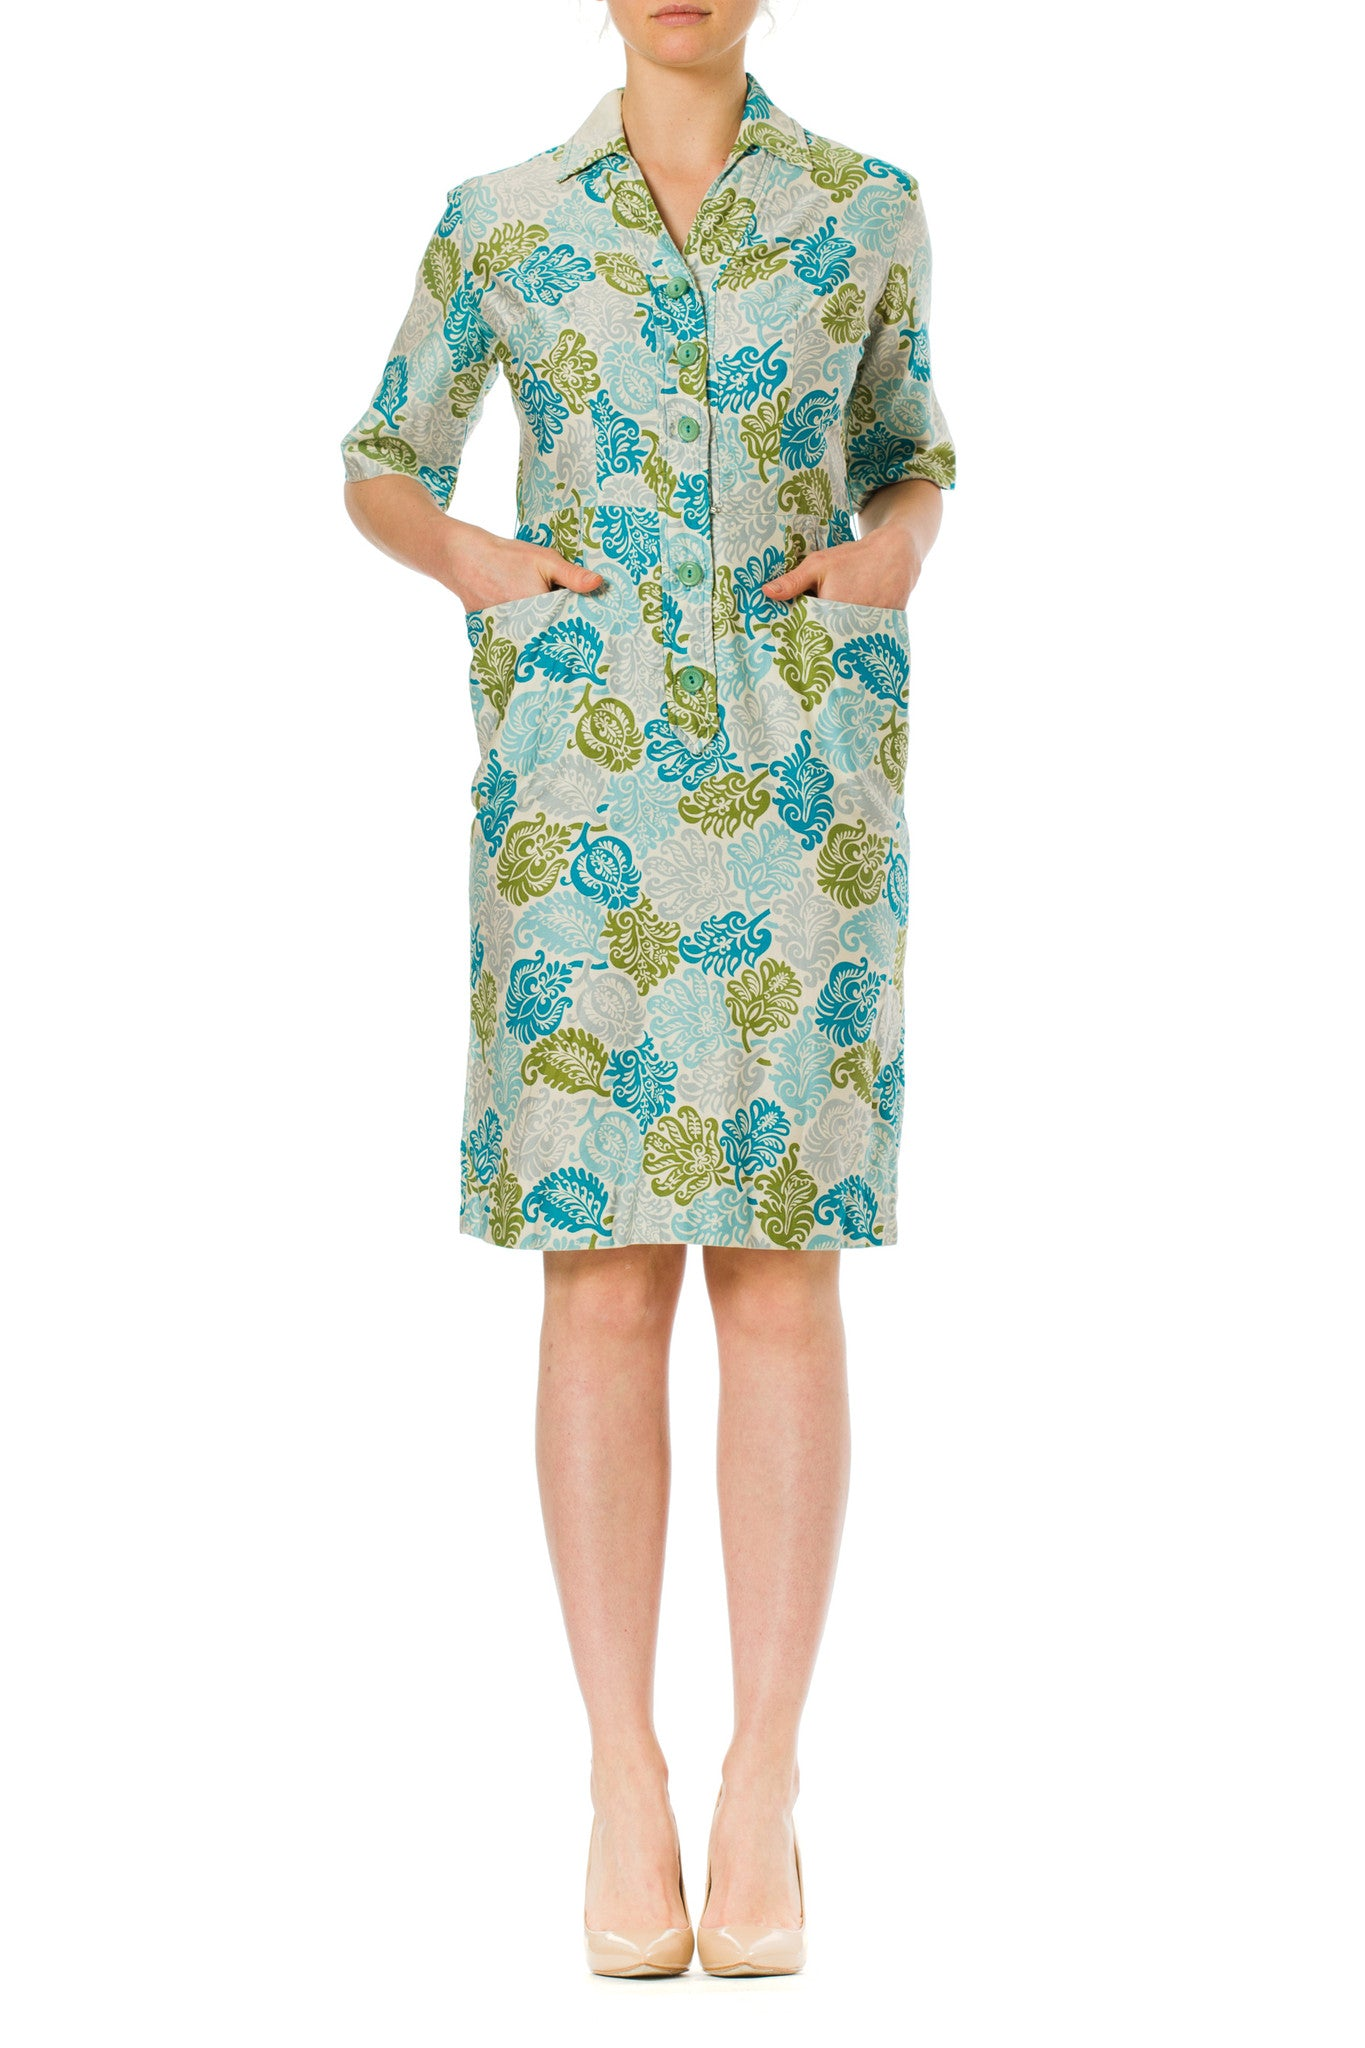 1960s Floral Paisley Priepi Printed Cotton Shirt Dress with Pockets